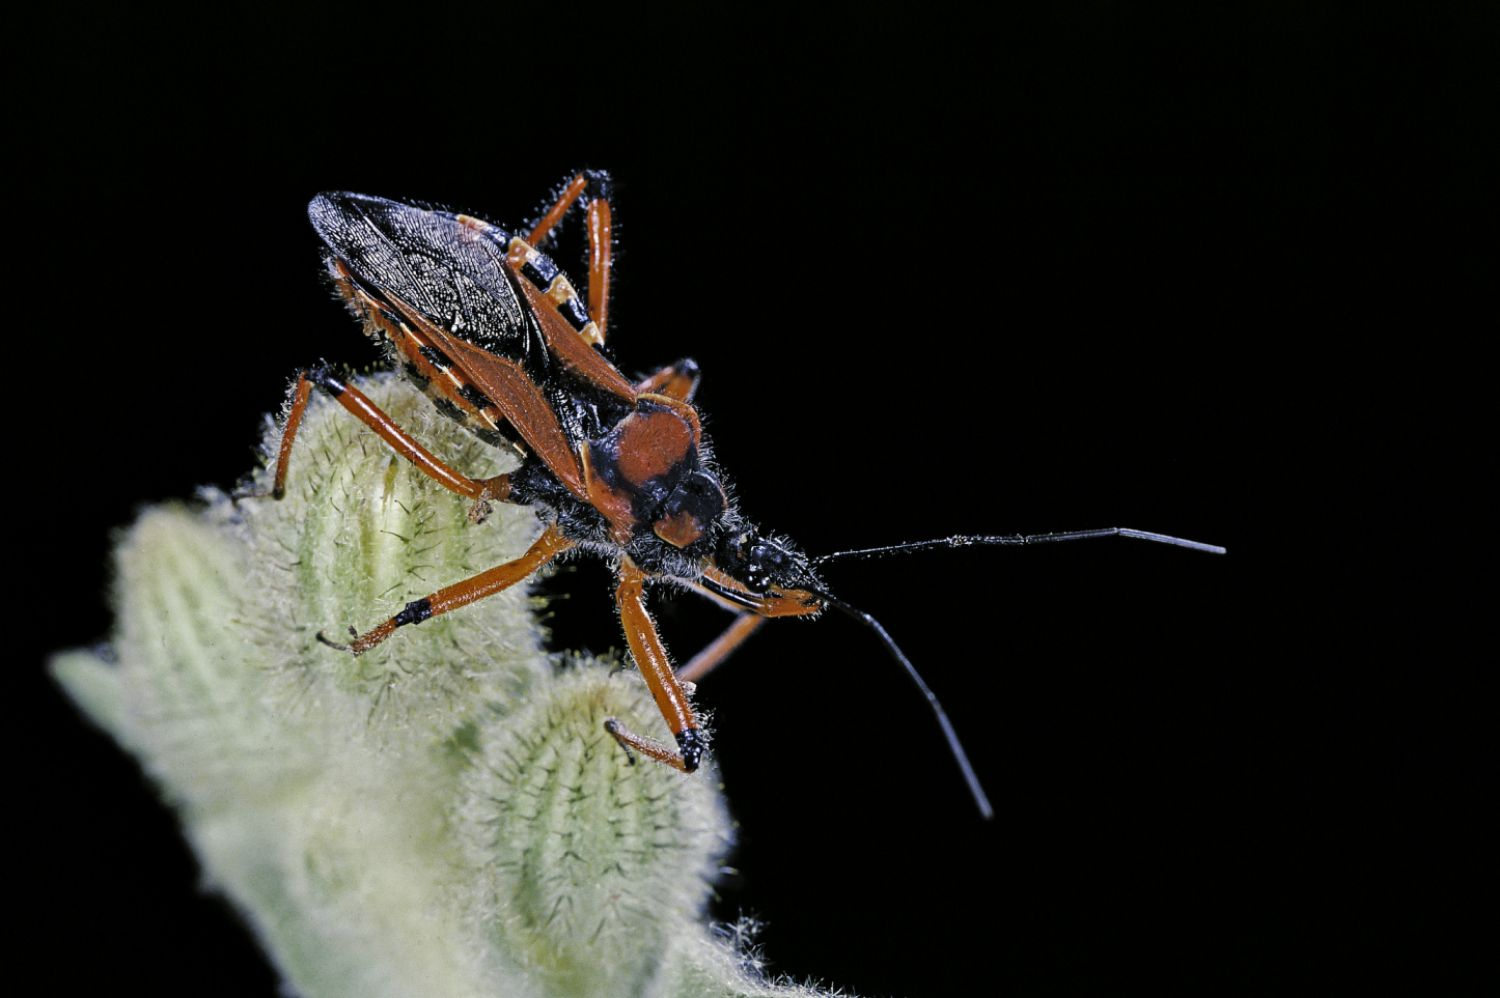 Male assassin bugs guard their eggs after mating. They also eat some of the eggs in the process.